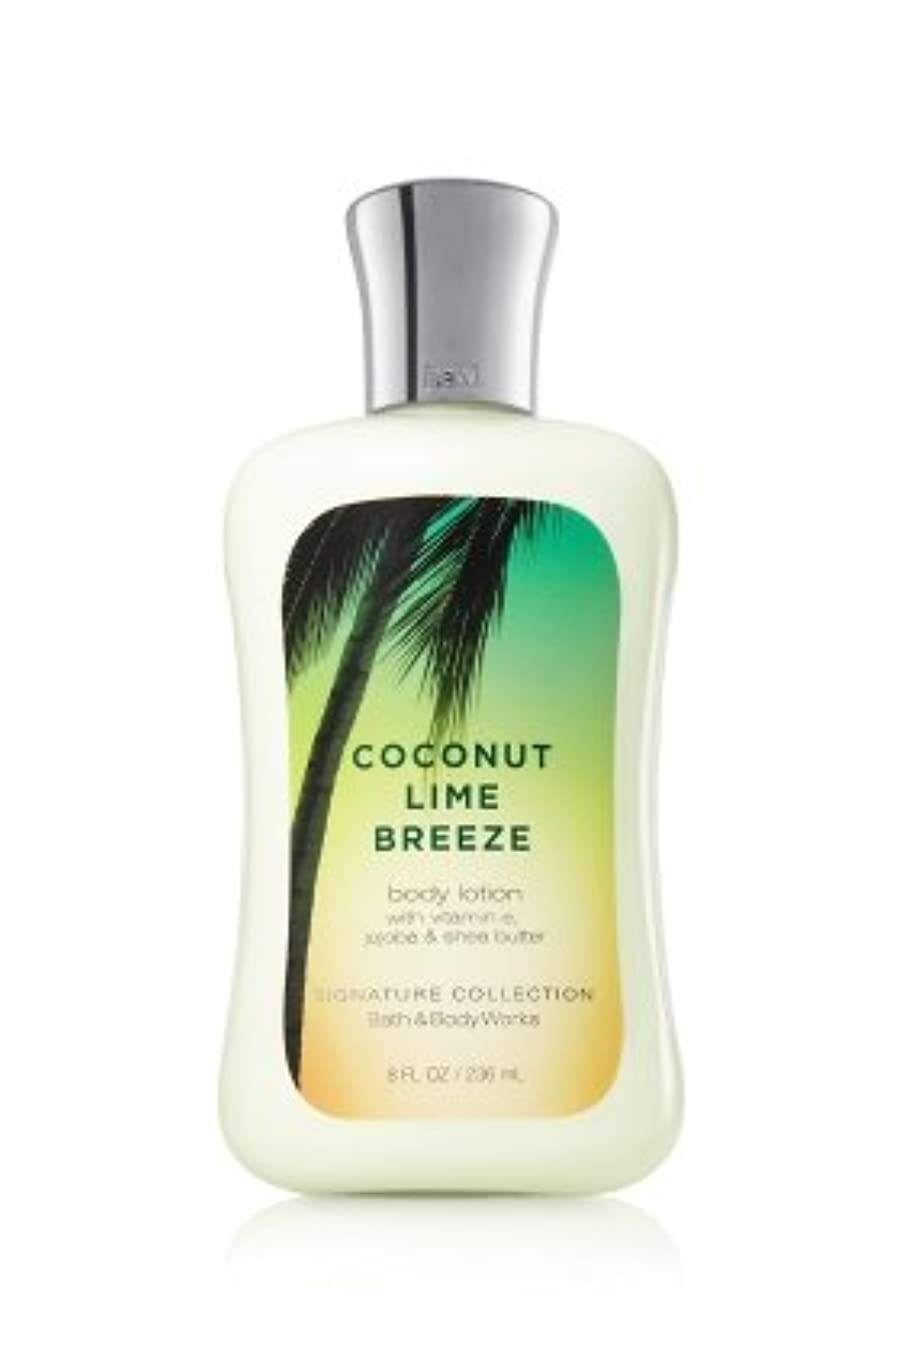 Bath and Body Works バスアンド ボディ ワークス ココナッツ ライム ブリーズ ボディローション Coconut Lime Breeze Body Lotion [海外直送品]